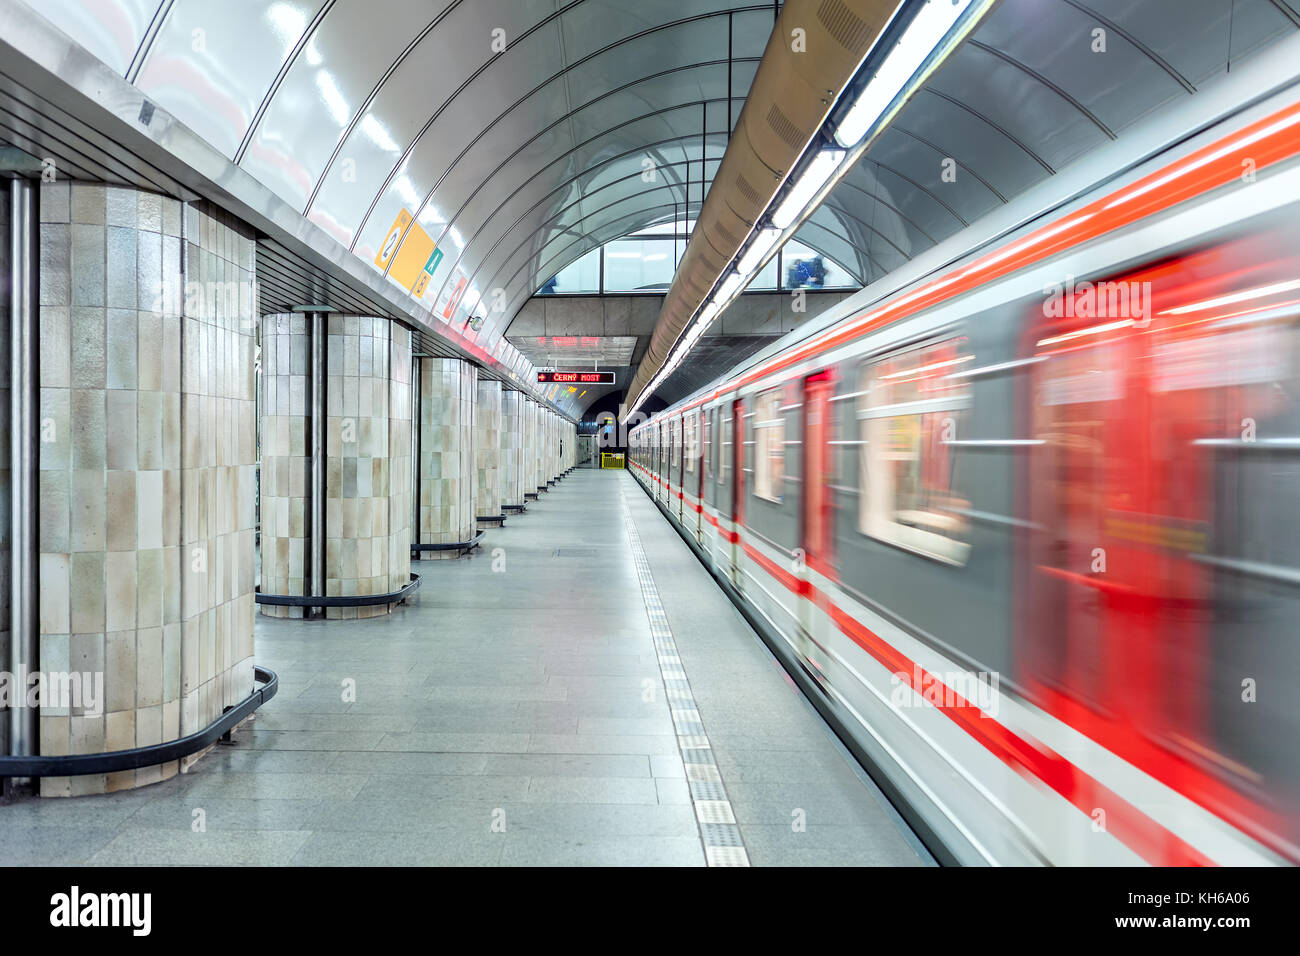 Train leaves empty platform at one of the metro stations in Prague. - Stock Image